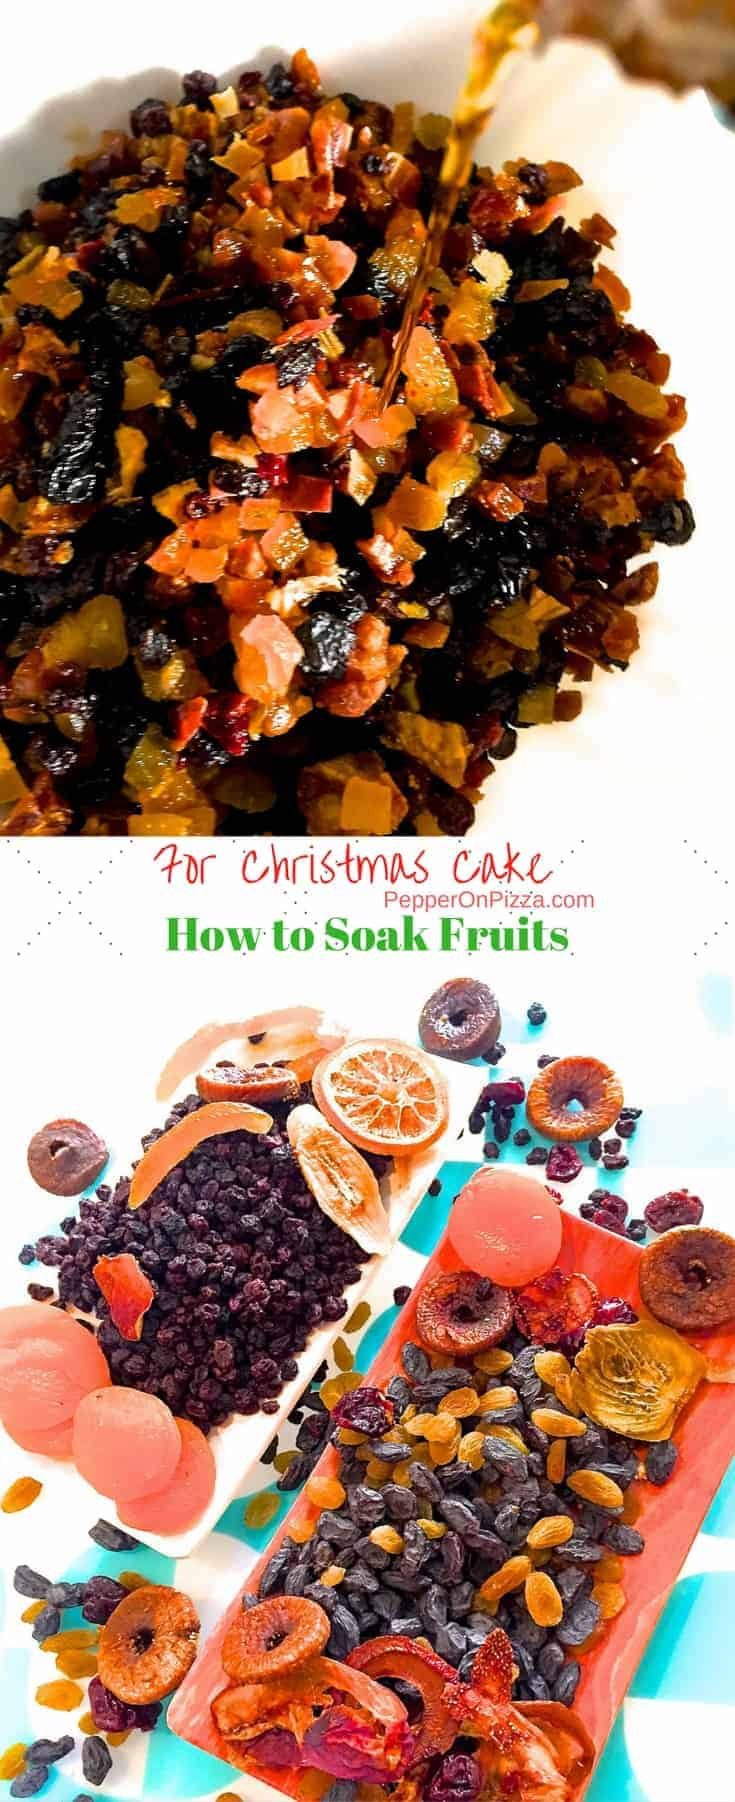 How to Soak Fruits for Christmas Fruit Cake, when to soak and what fruits to use, how to feed the fruit till baking time. Non alcoholic soaking or with alcohol